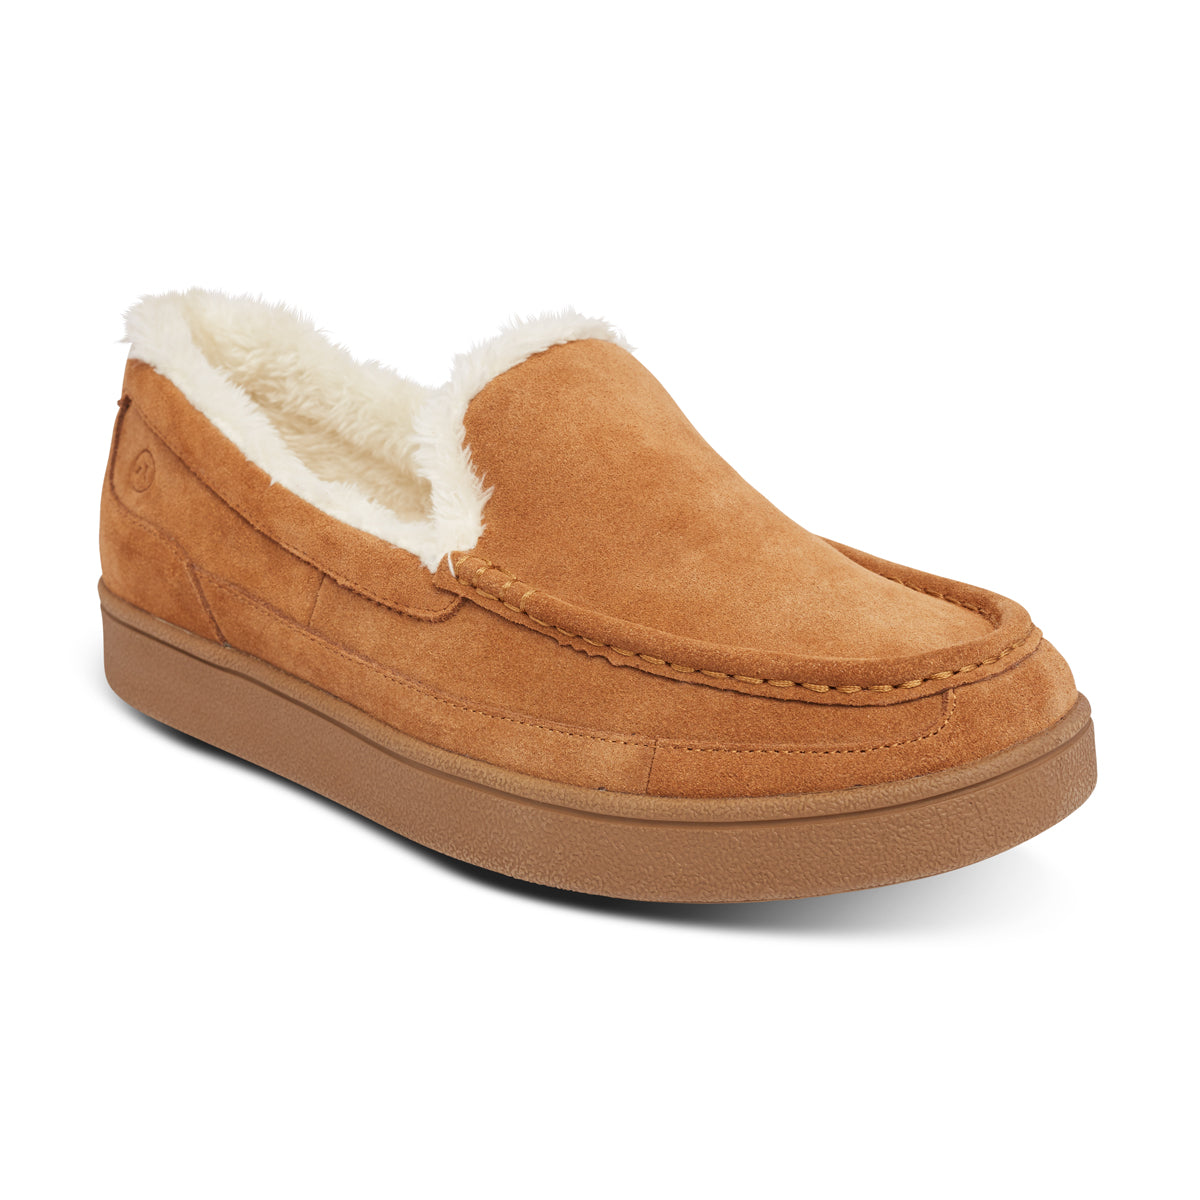 Anodyne Men's No. 34 Slipper Moc Toe (Camel)